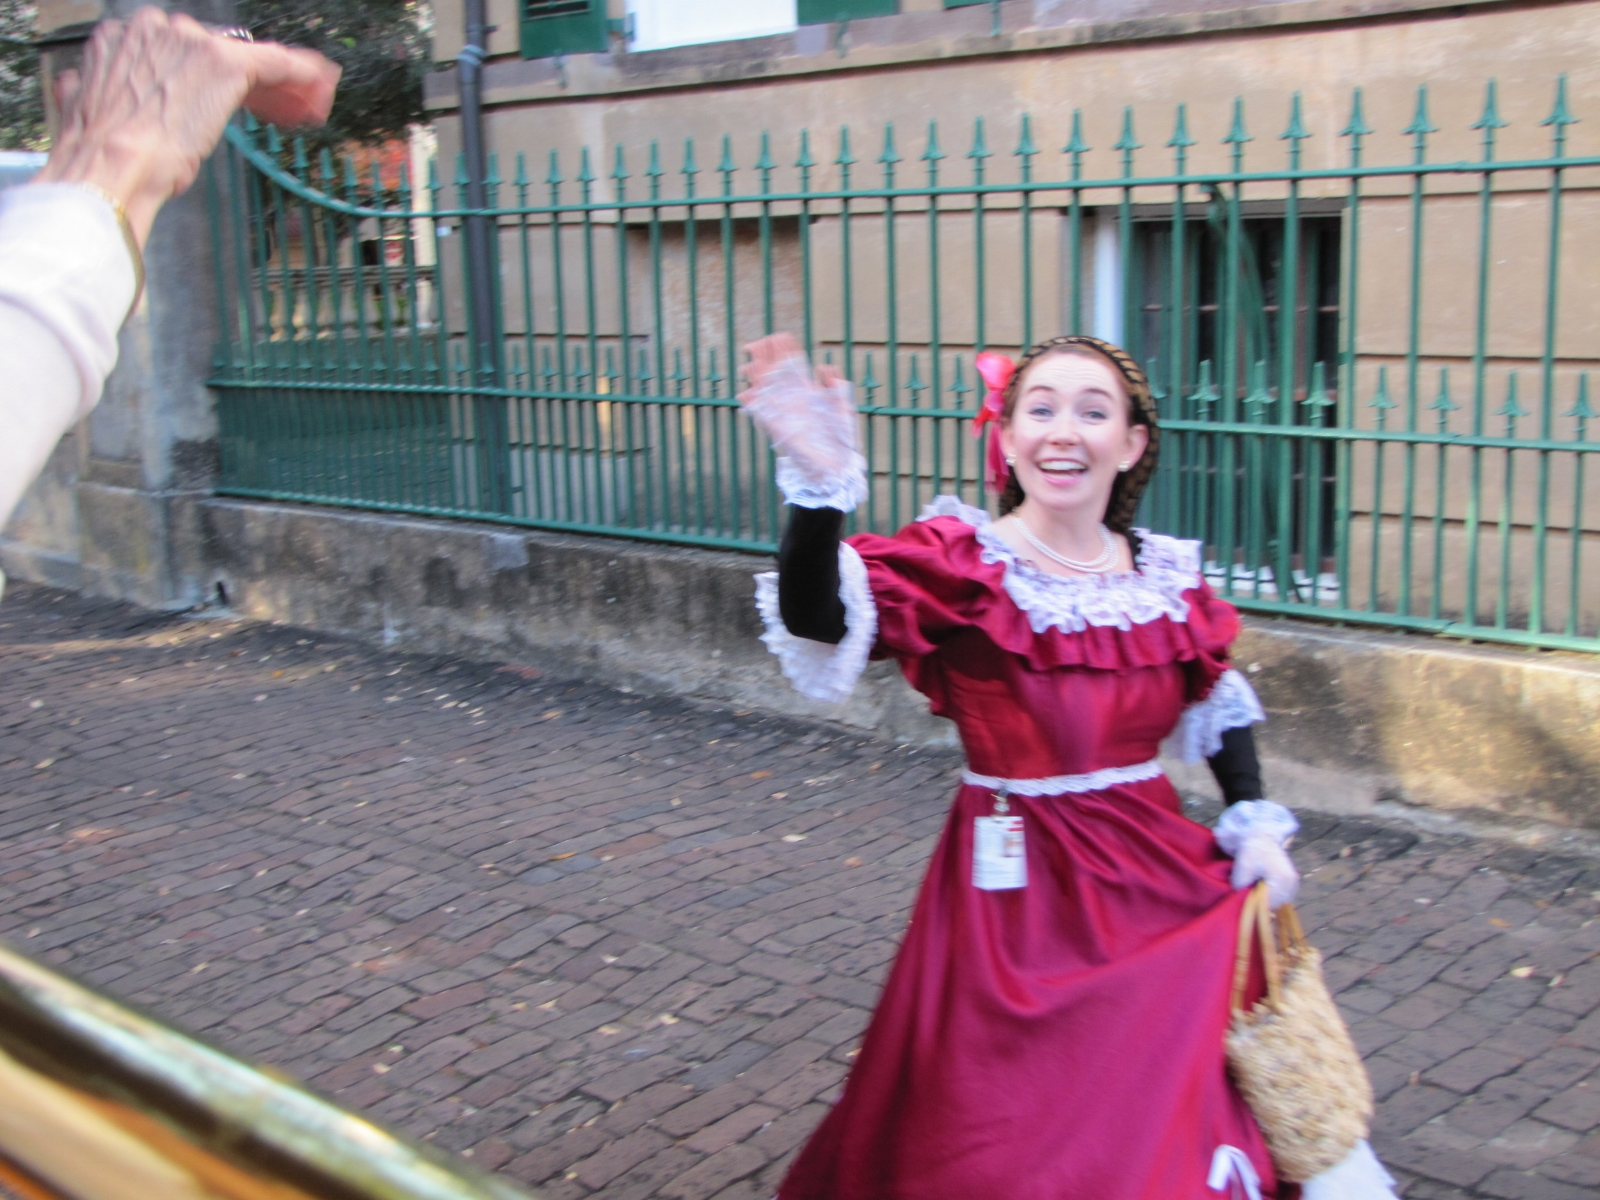 actress in historic costume on streets of Savannah